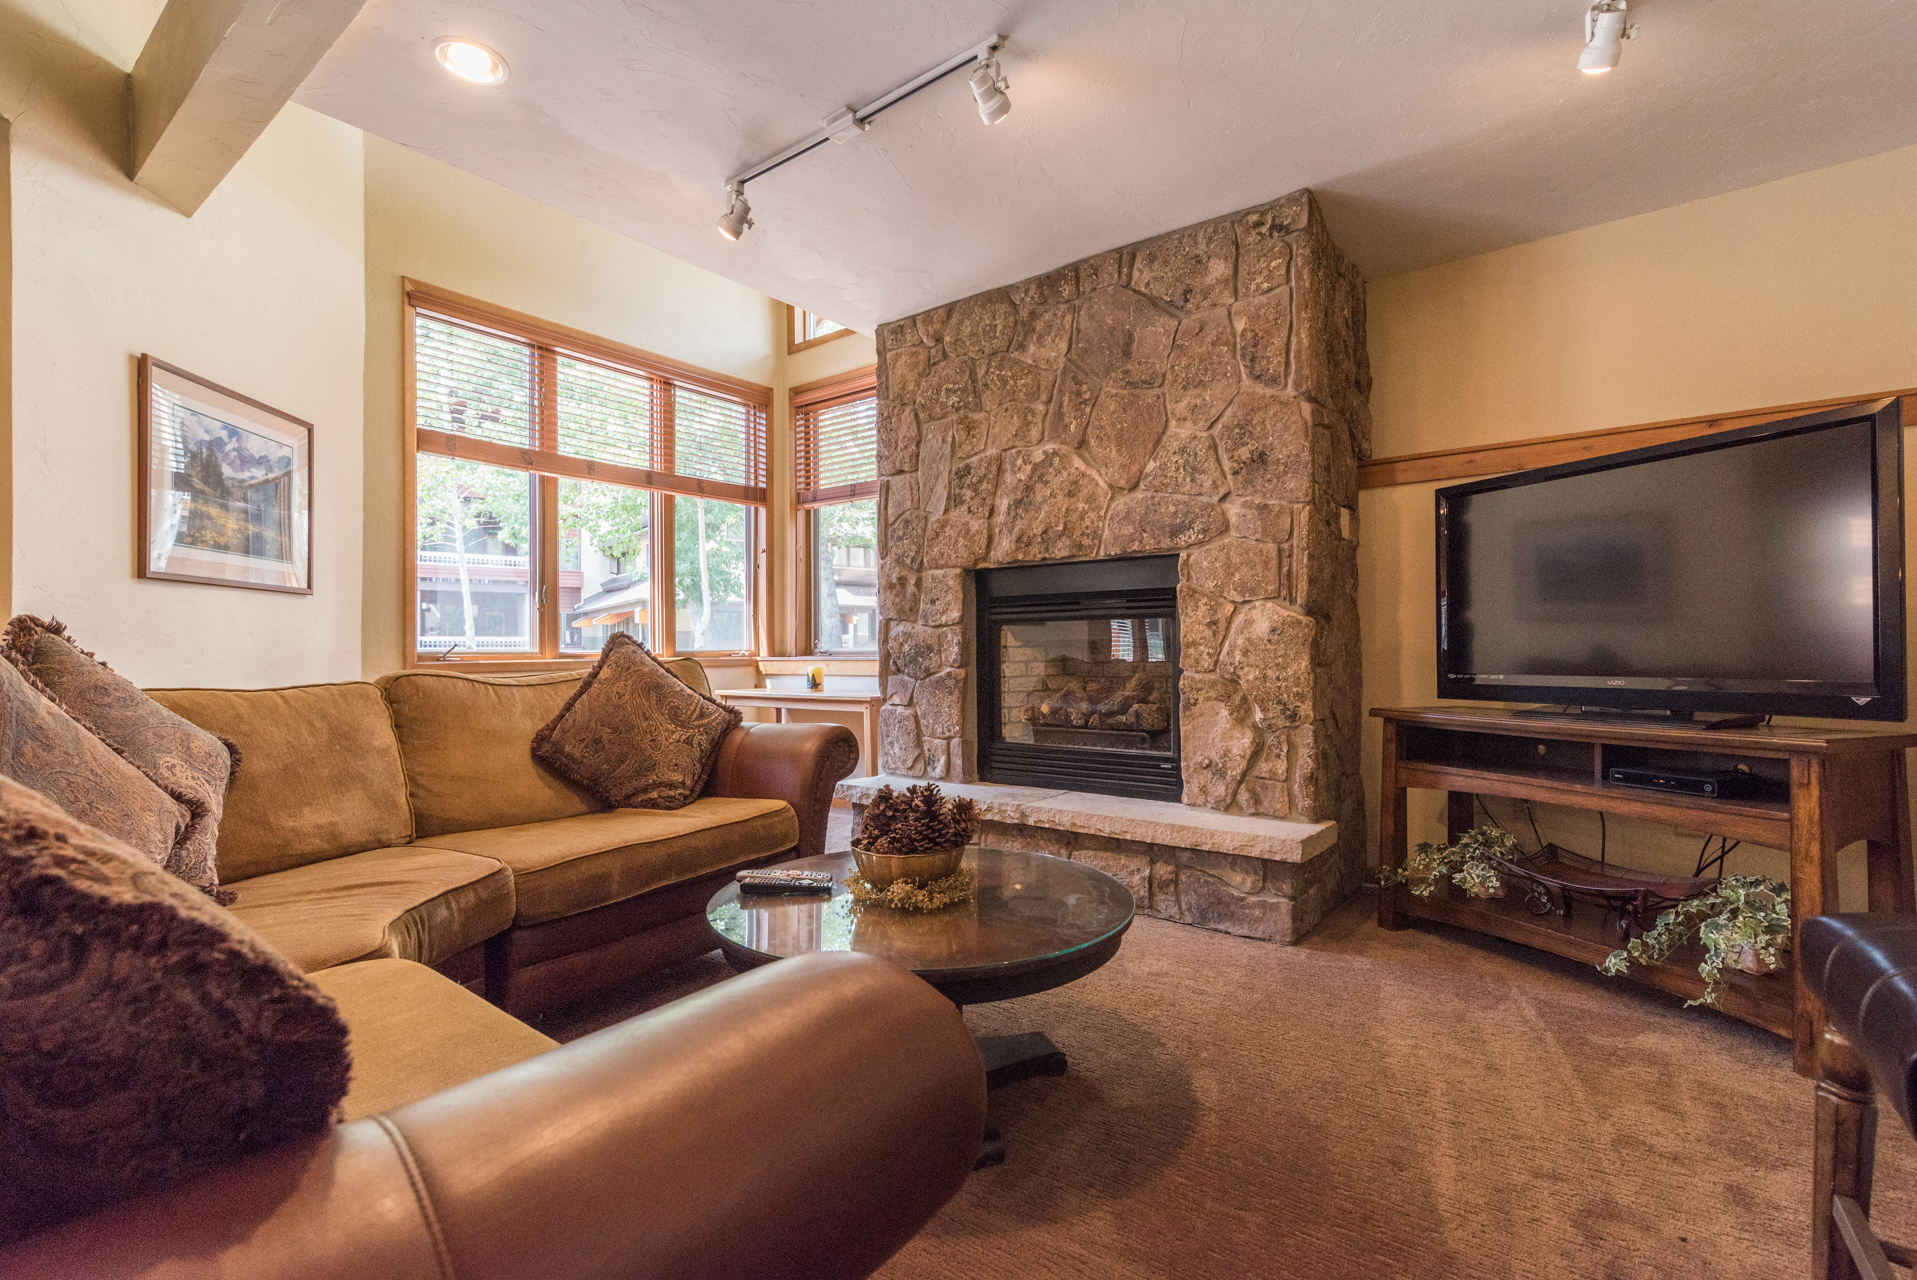 Trappeur S Crossing Resort What To Do In Steamboat Springs